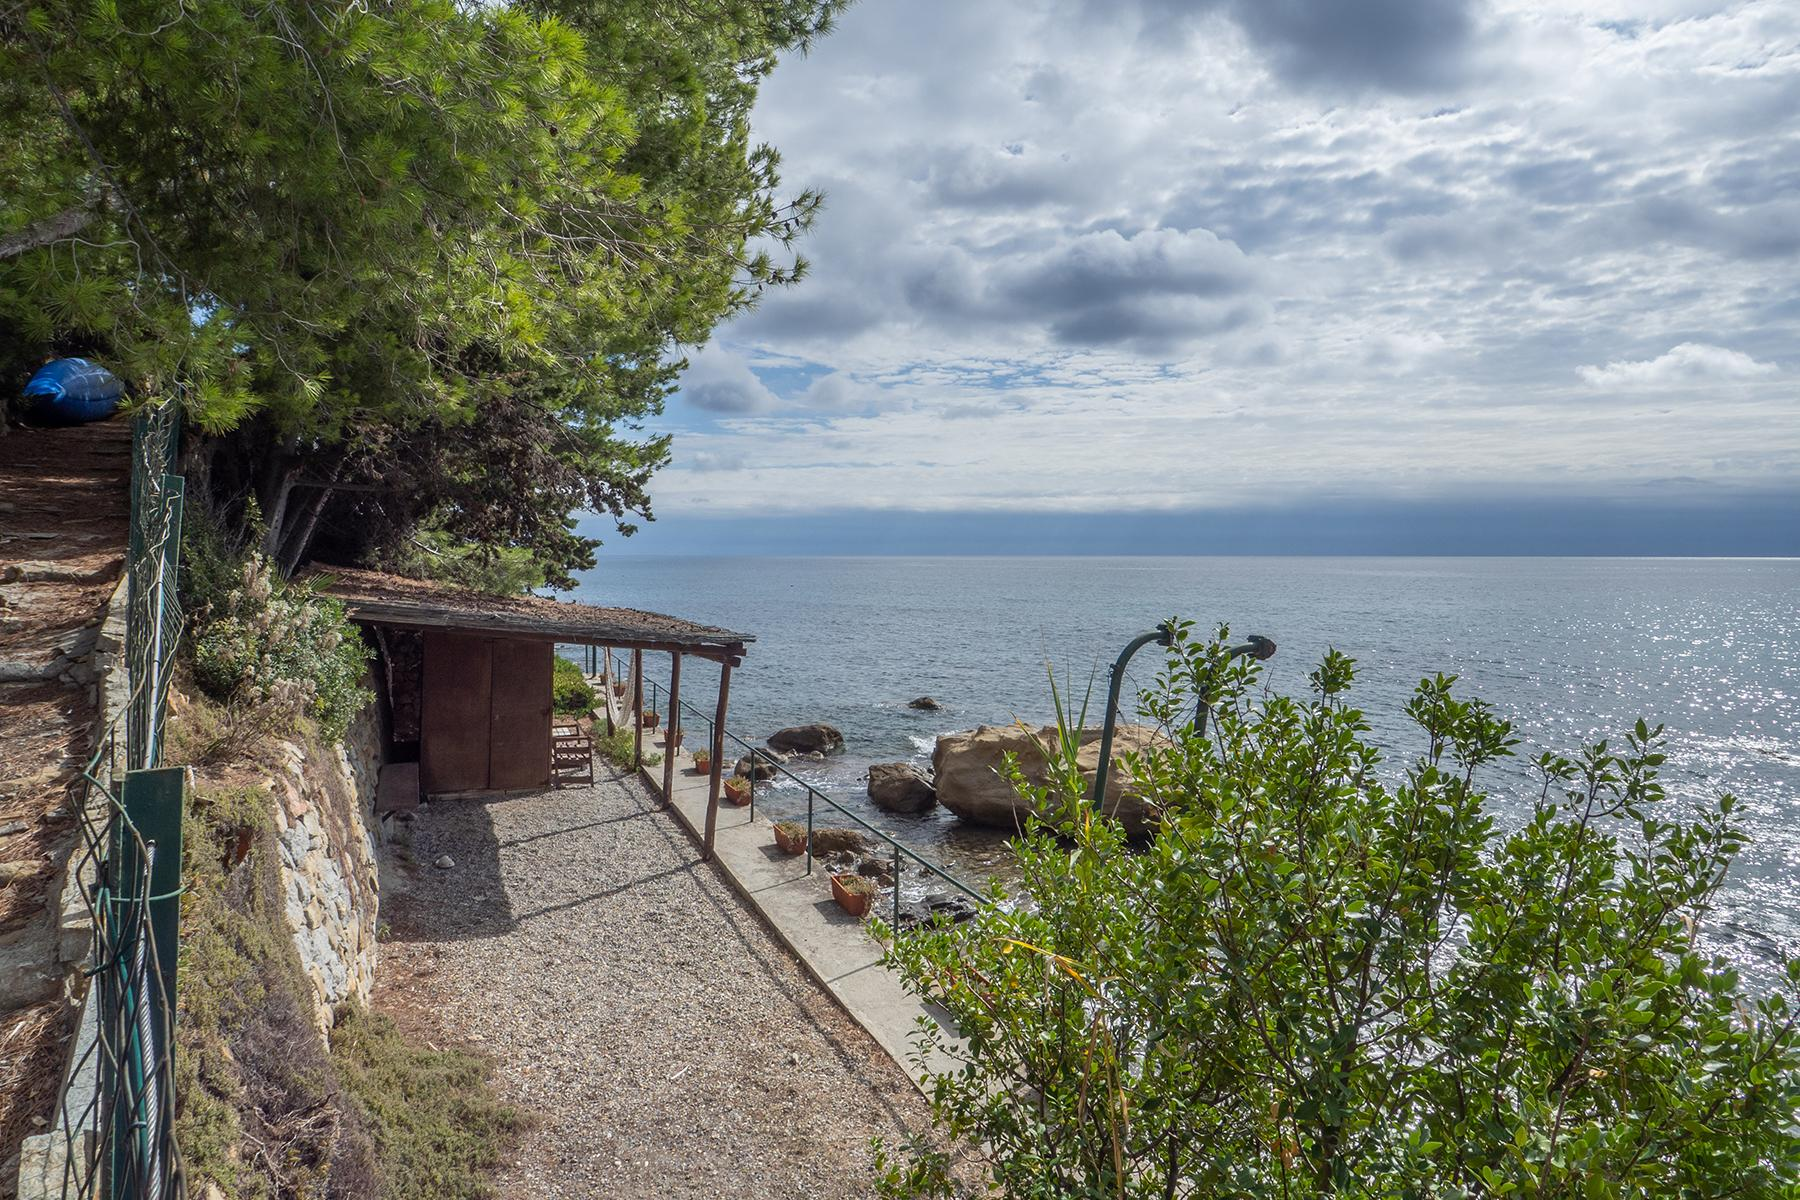 Semidetached historical villa with private access to the sea - 30